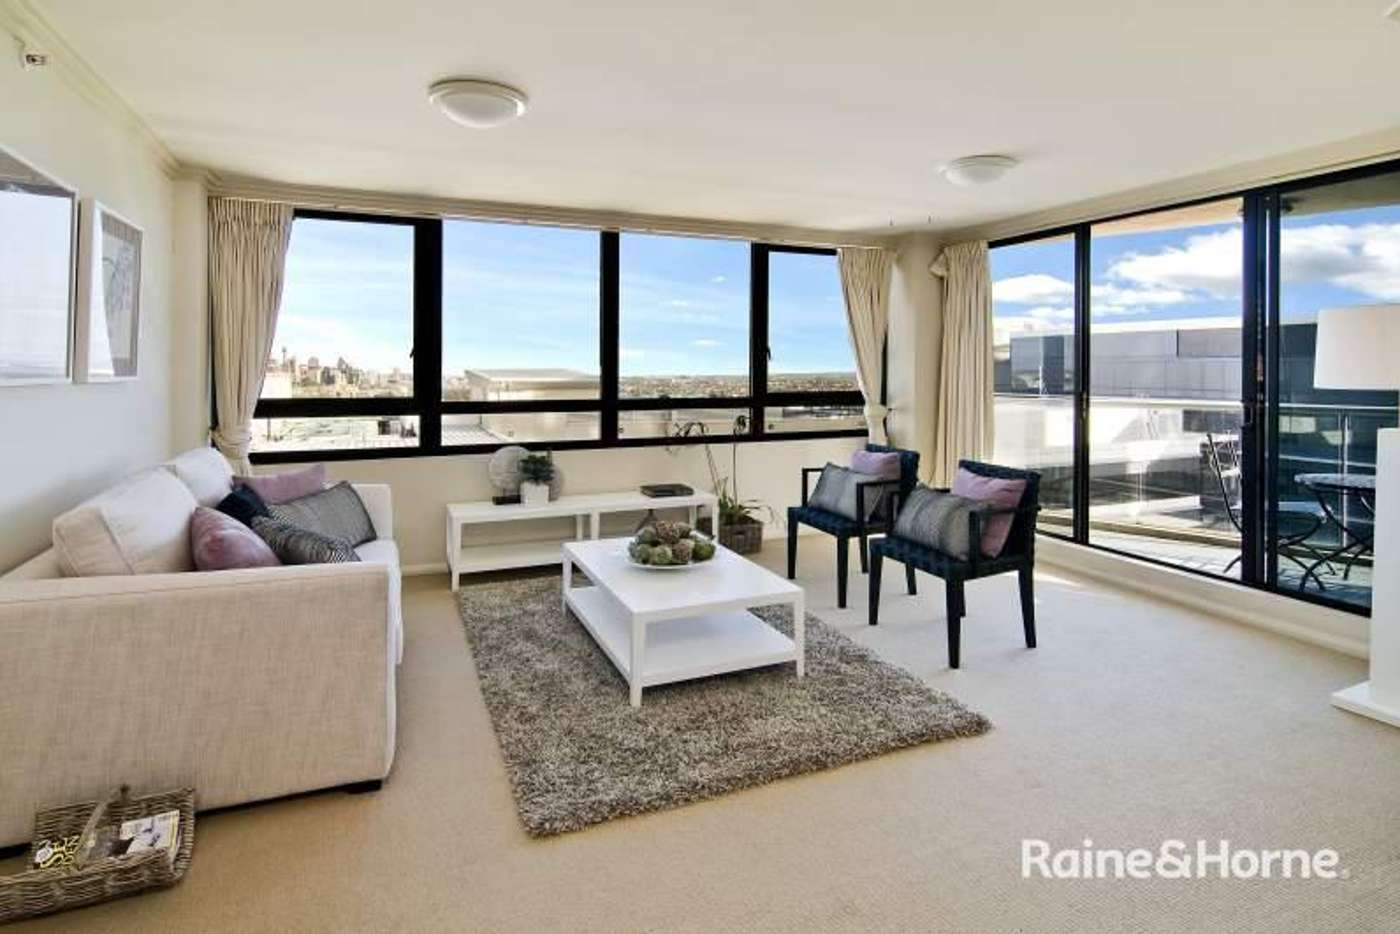 Main view of Homely apartment listing, 1502/1 Sergeants Lane, St Leonards NSW 2065